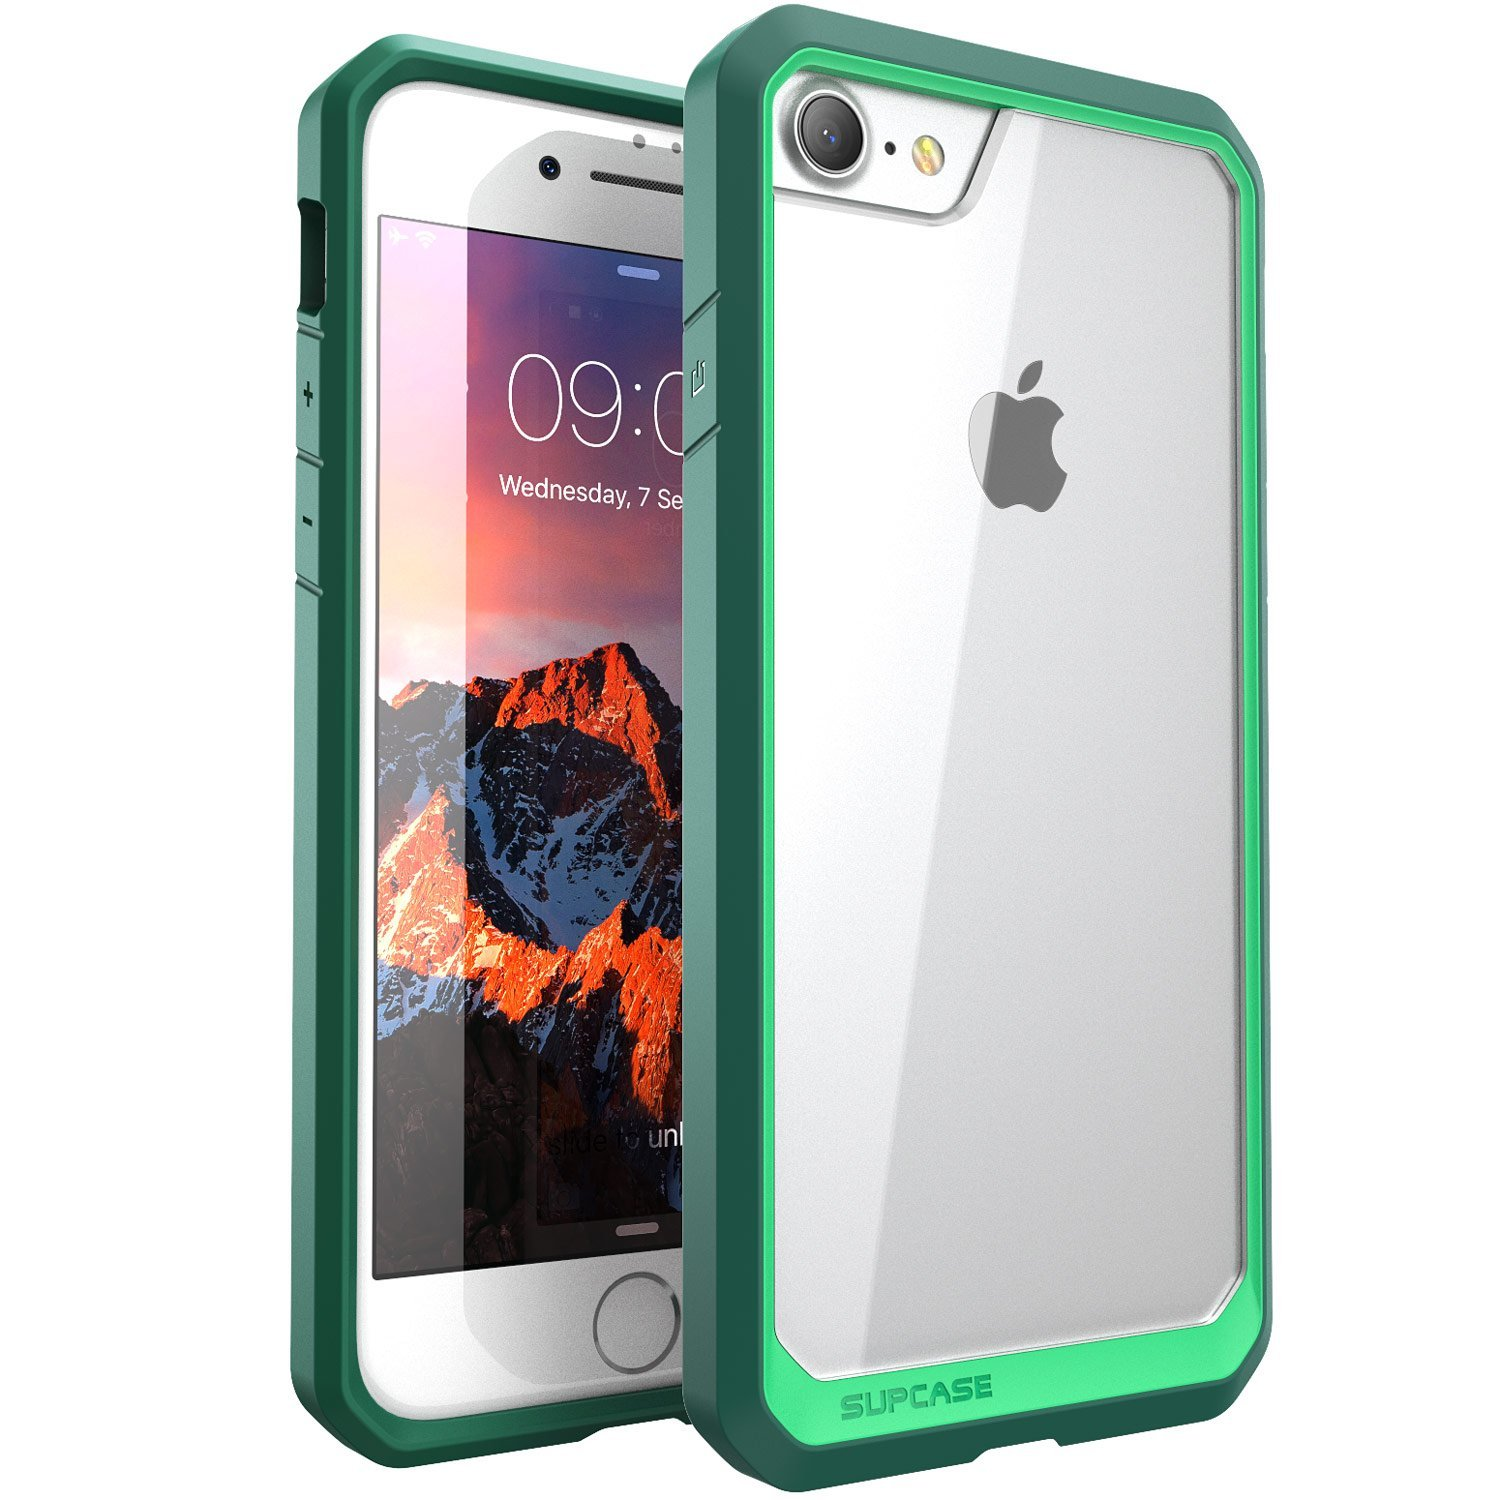 81873373c34 Case Supcase Hybrid Protective Green – iPhone 7 | Identidad Movil: Fundas y  Estuches para SmartPhones